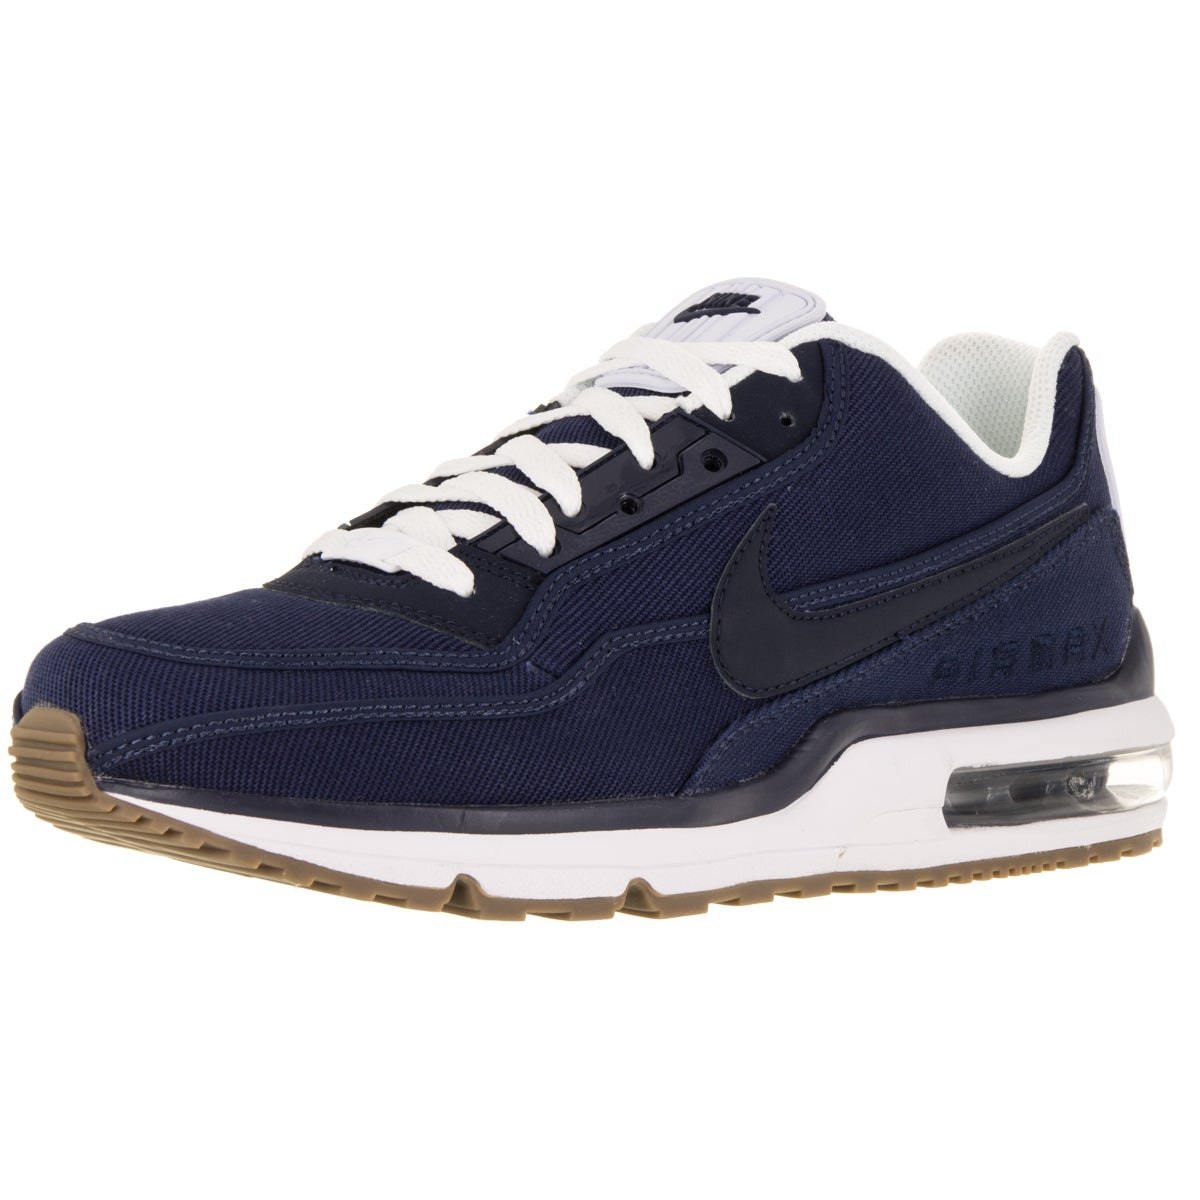 a2a4f628b6 Shop Nike Men's Air Max Ltd 3 Txt Mid Navy/Obsidian/White/Gm Dark Brw  Running Shoe - Free Shipping Today - Overstock - 12120035